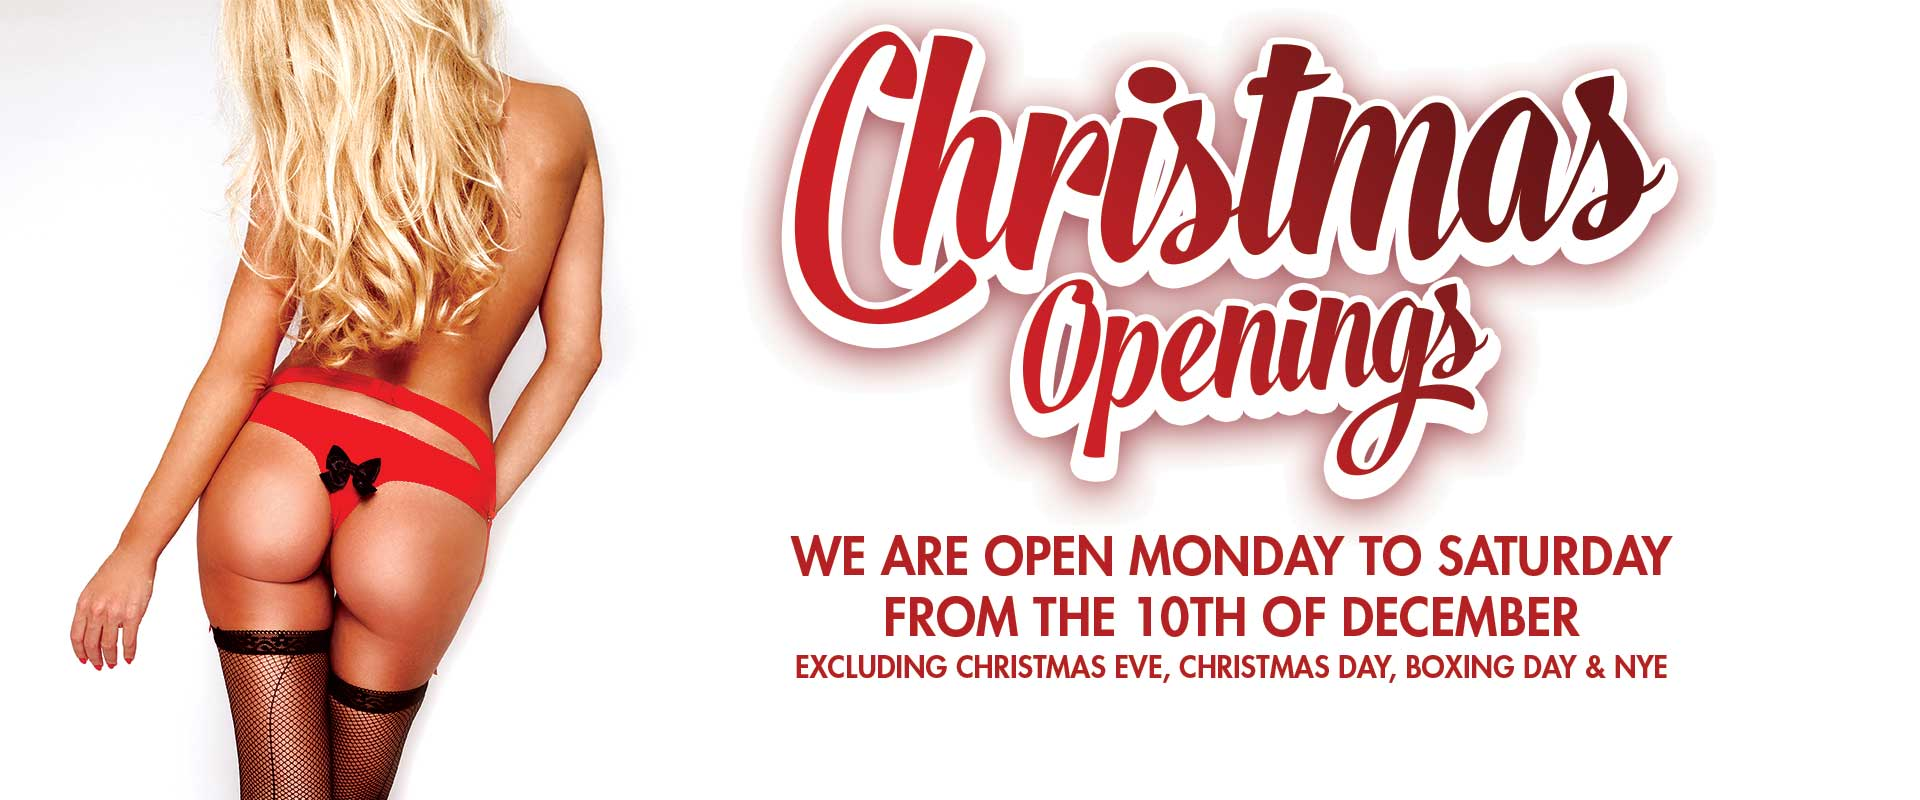 Christmas Opening Times 10th of December 2018